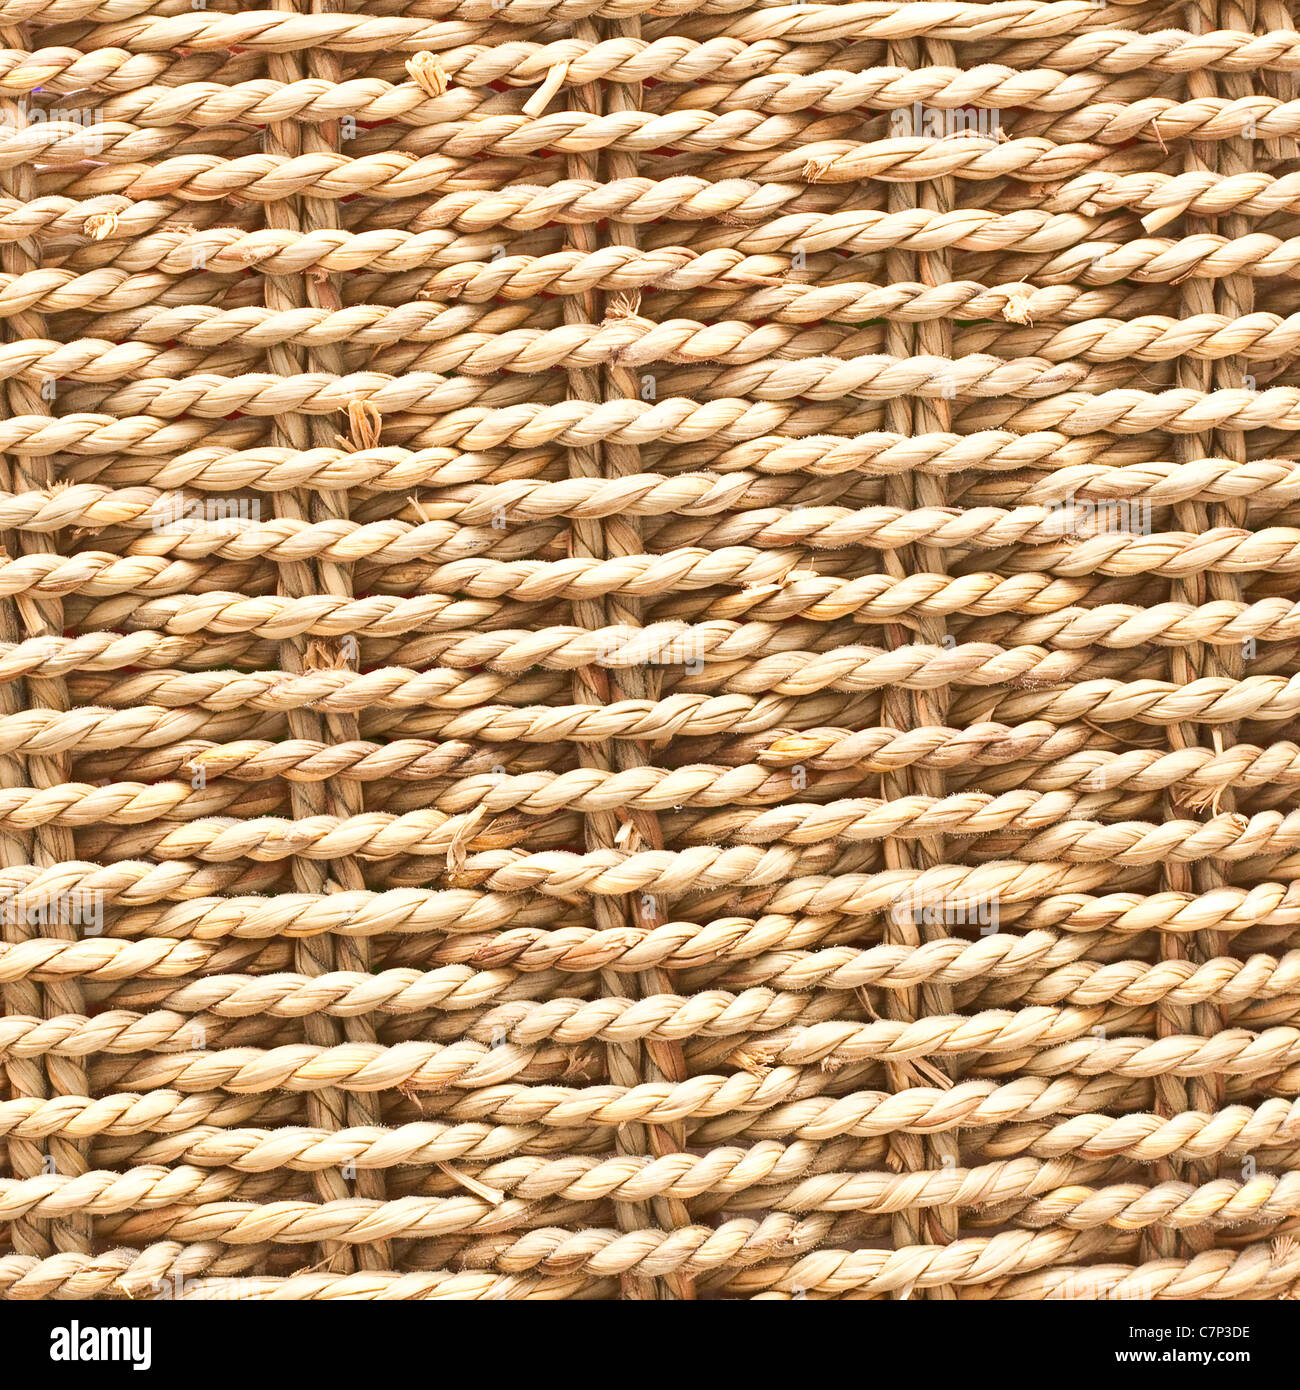 Textured basket made of natural fibres as a background - Stock Image